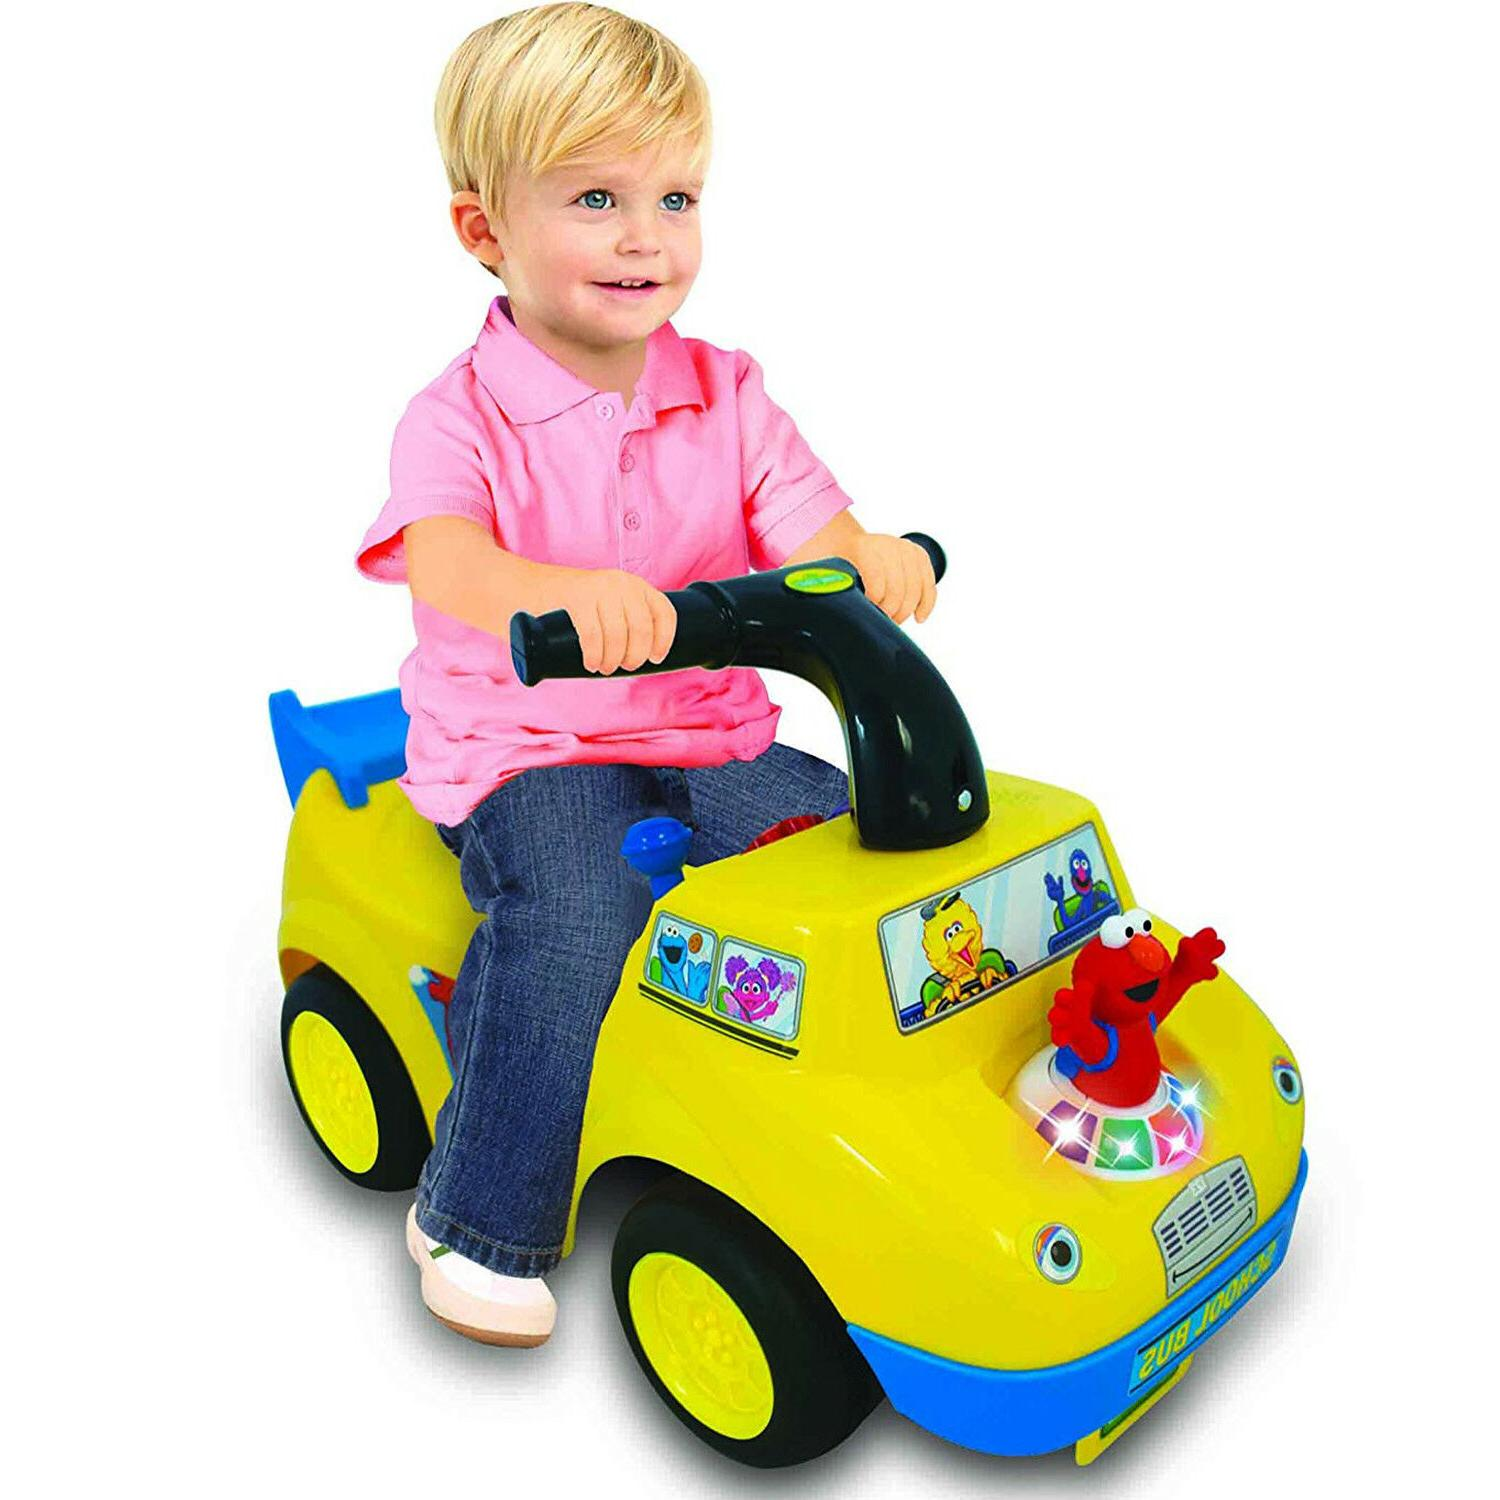 Toddler Ride Push Activity Play Kids